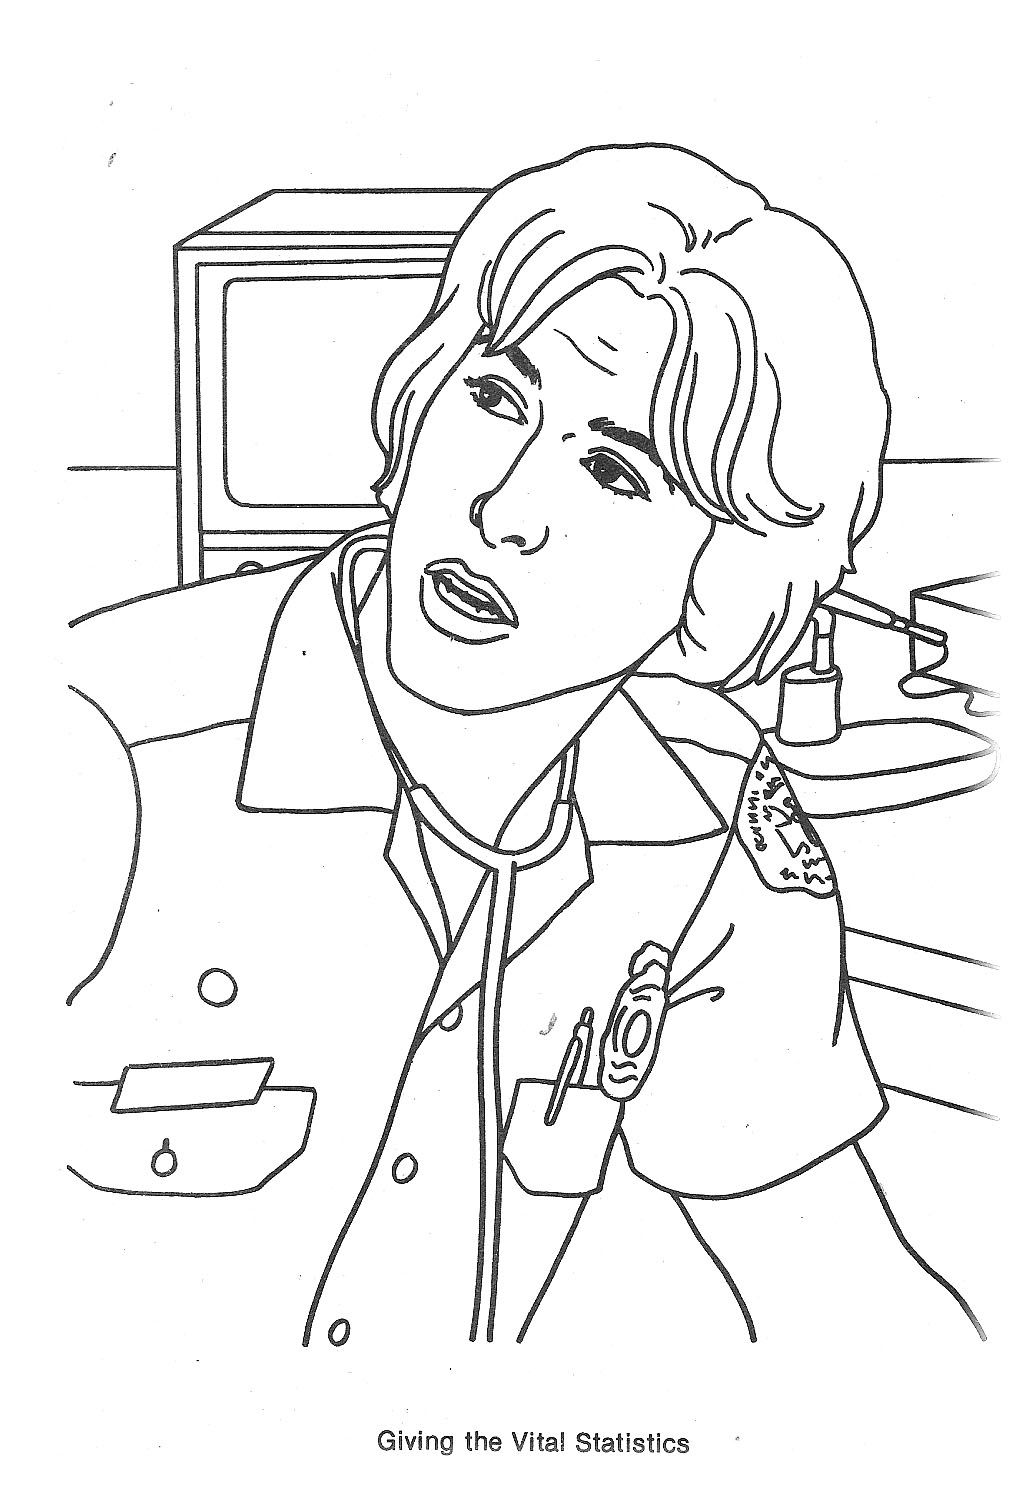 The Unofficial Friends Tv Show Printable Coloring Book Digital Download Coloring Book Printa Printable Coloring Book Friends Coloring Pages Friends Tv Show